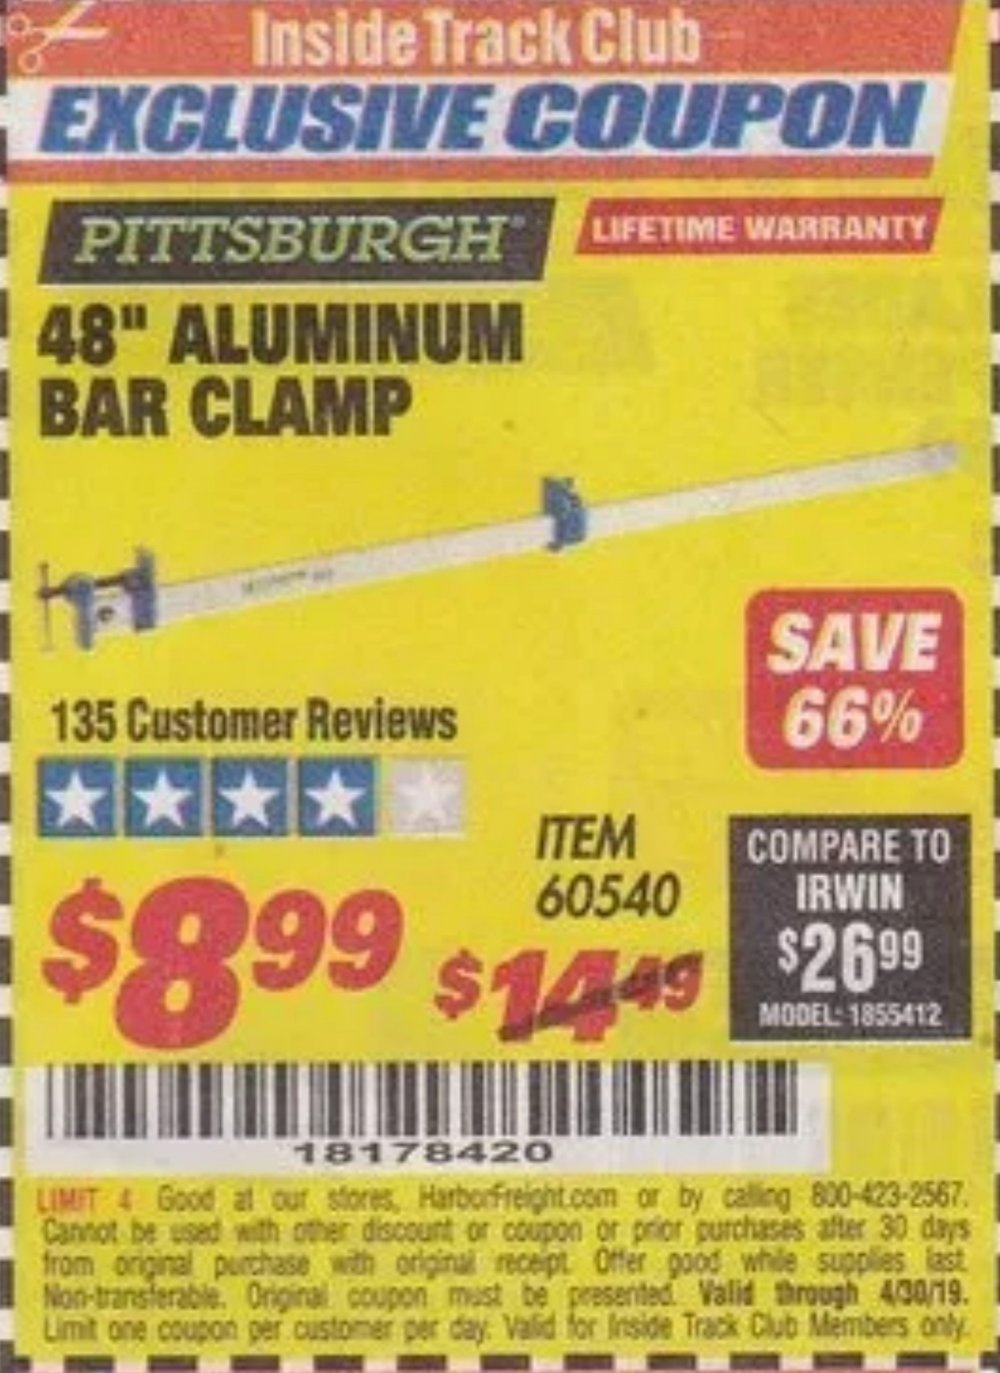 Harbor Freight Coupon, HF Coupons - Pittsburgh 48